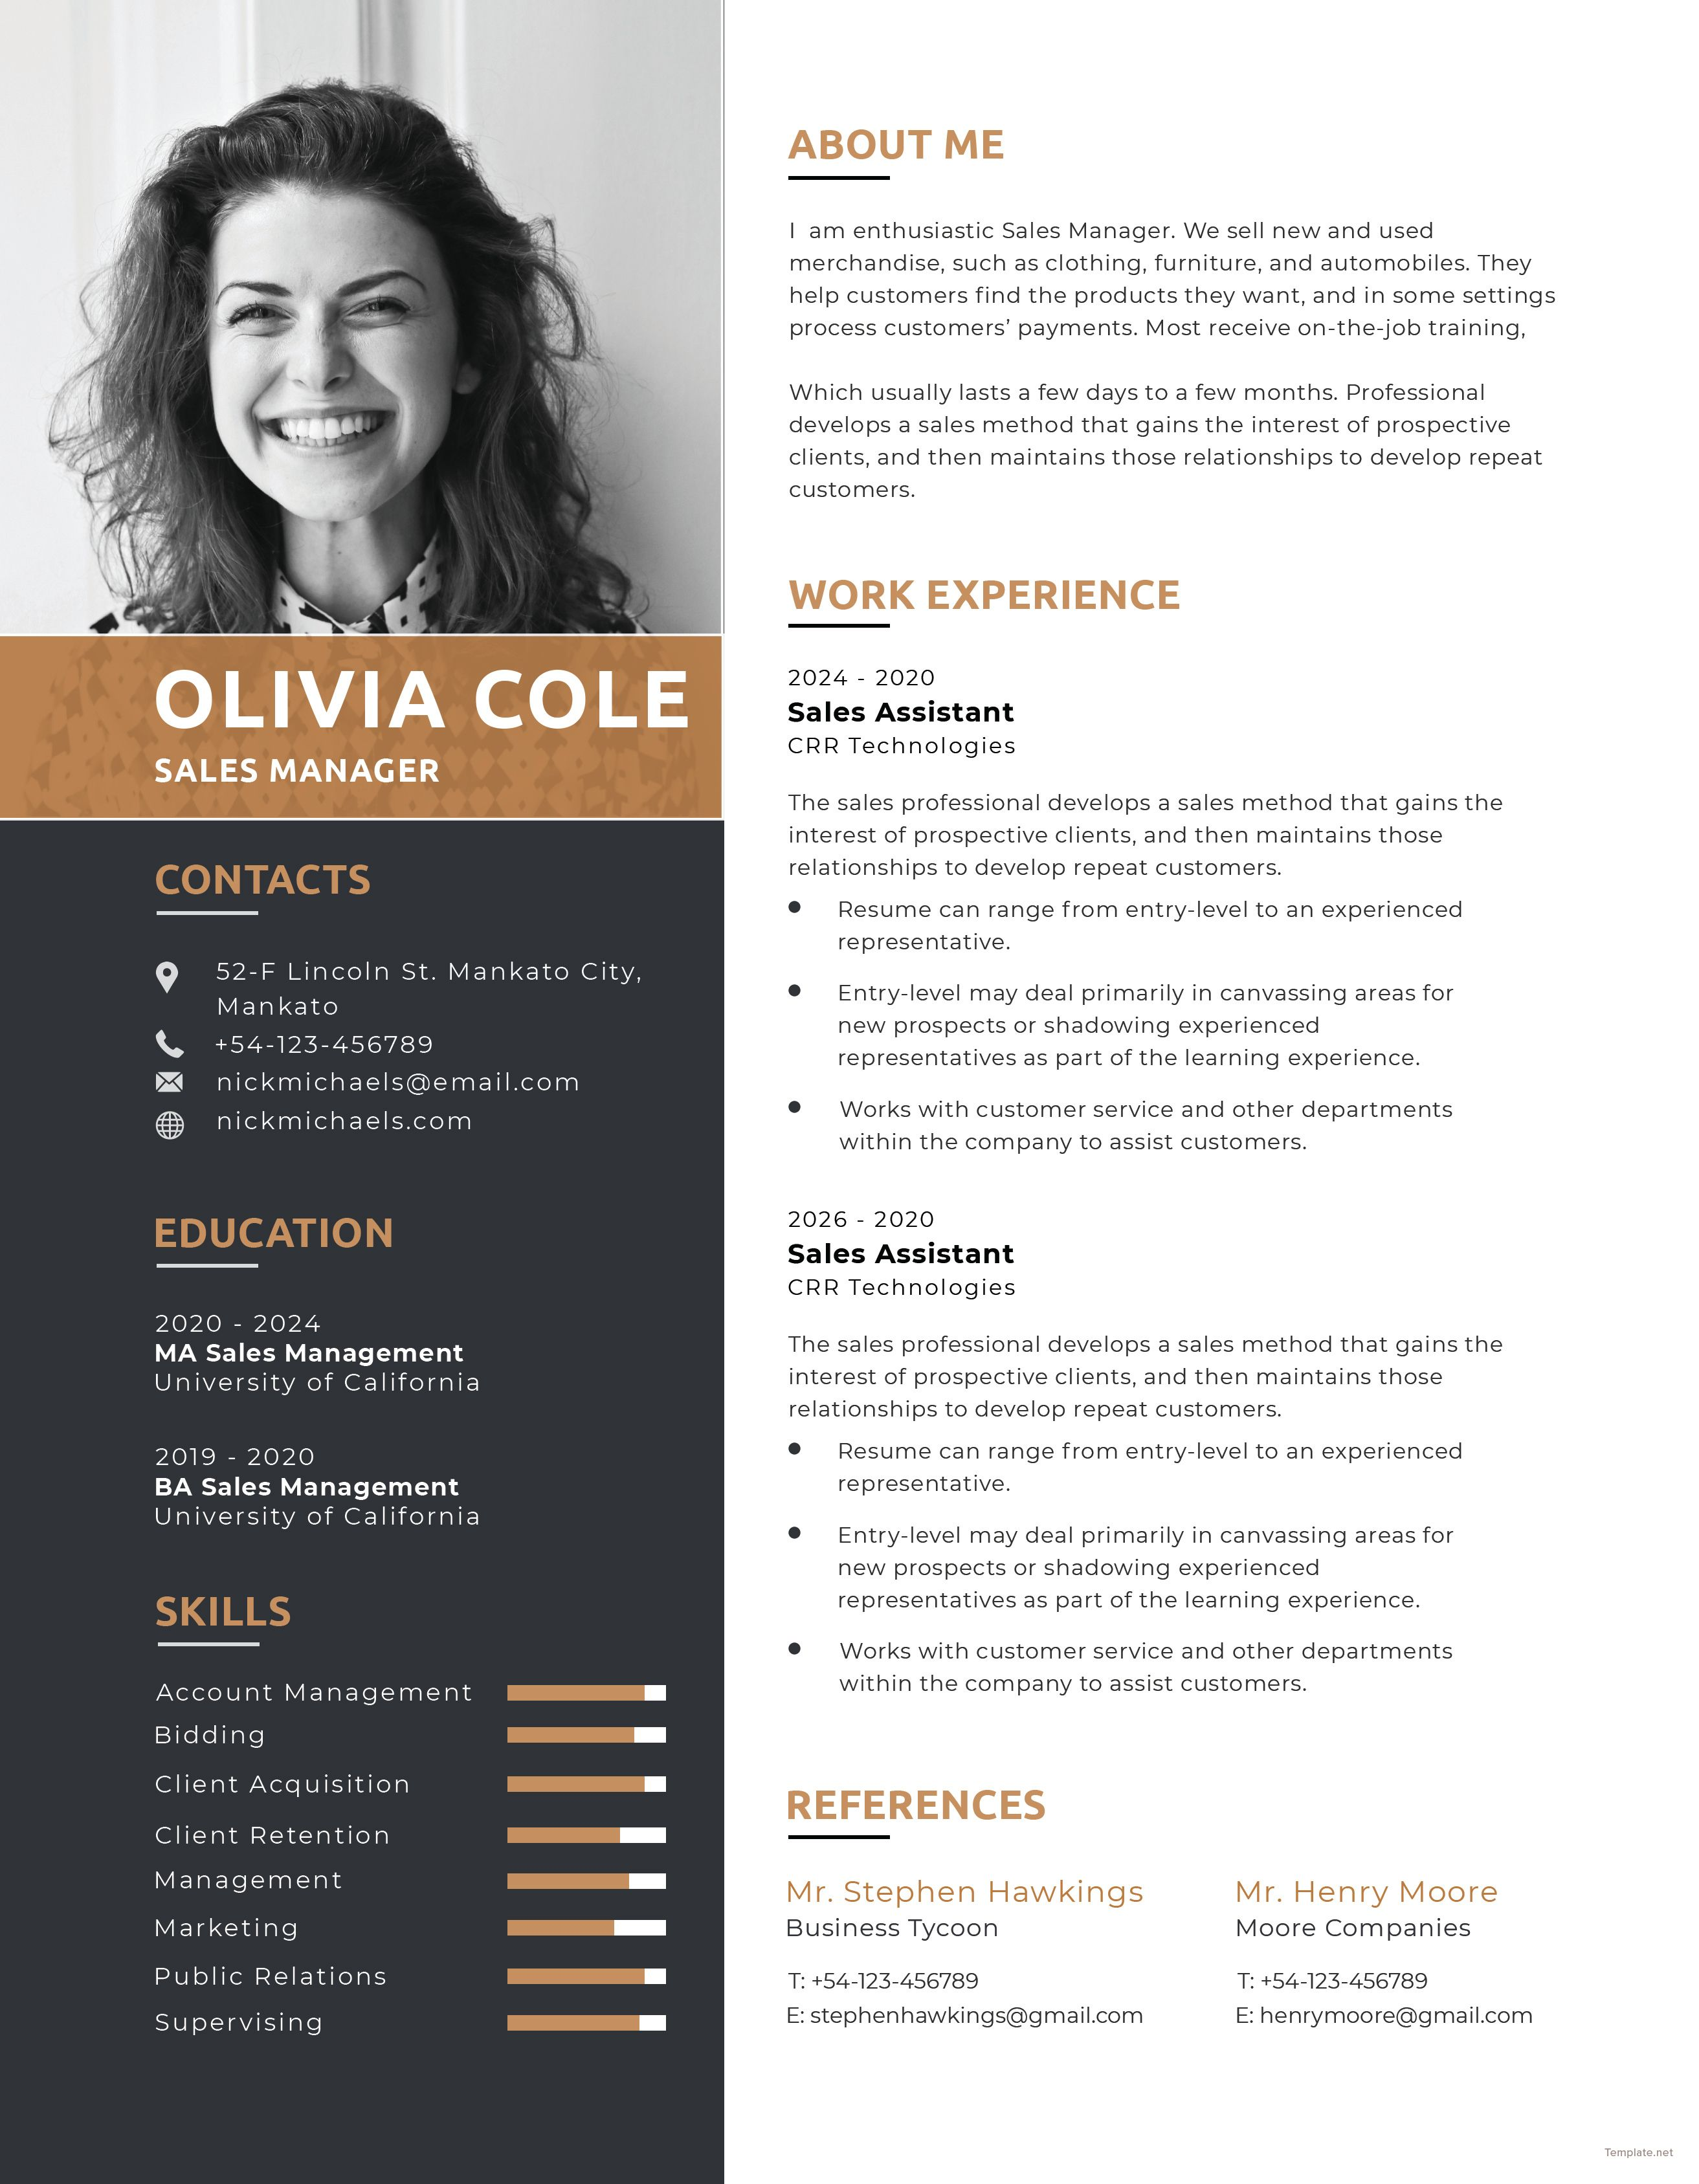 Free One Page Resume Indesign Resume Template One Page Resume Template One Page Resume